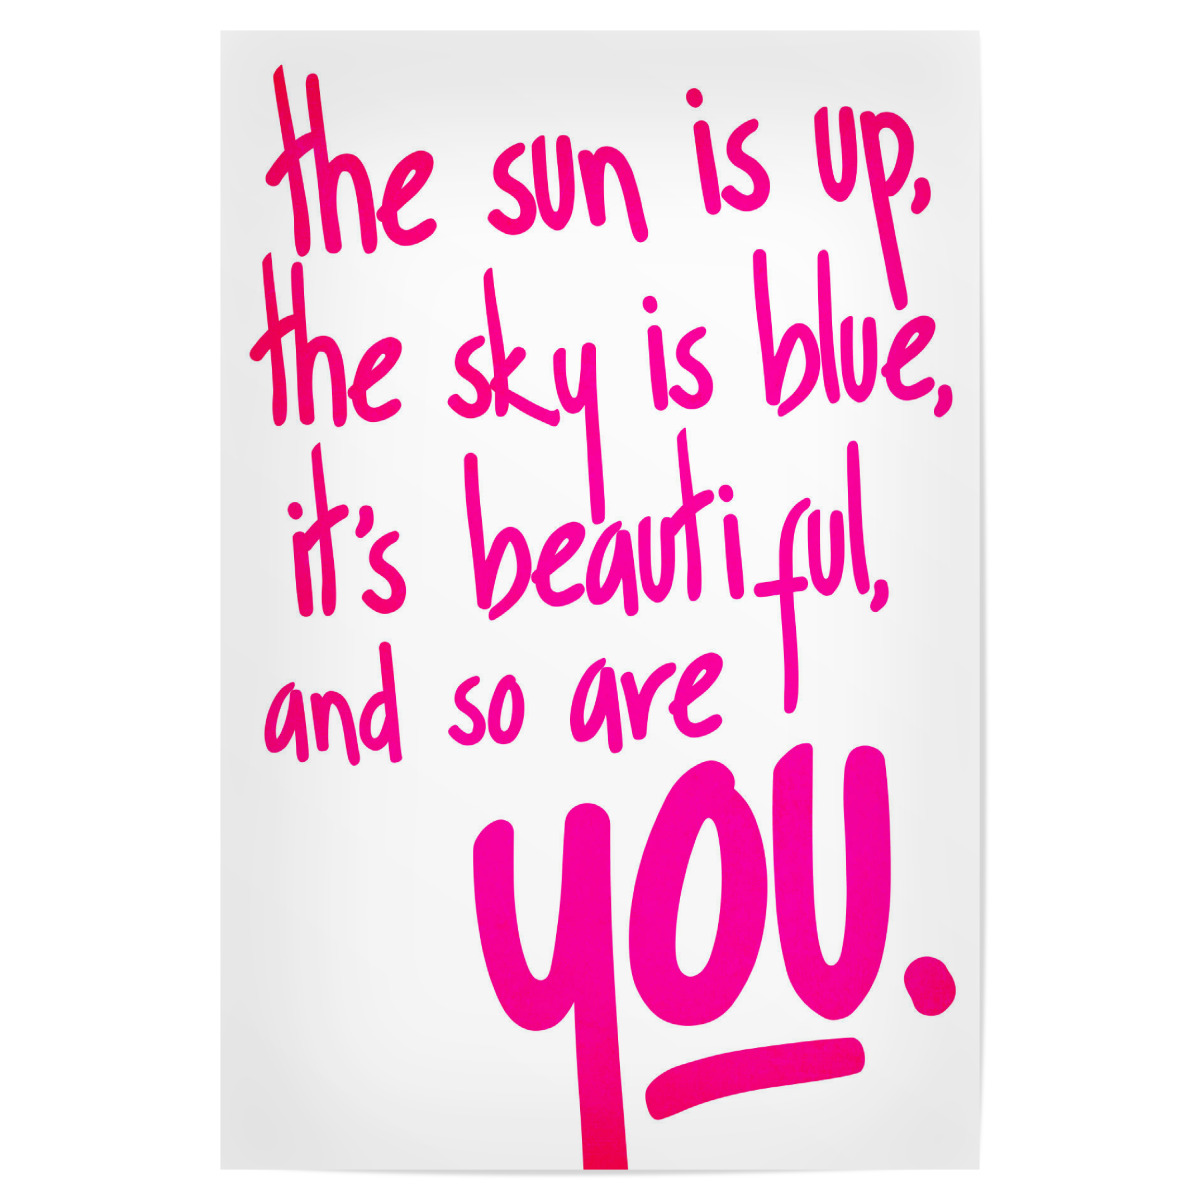 You Are So Beautiful 20x20 cm Poster